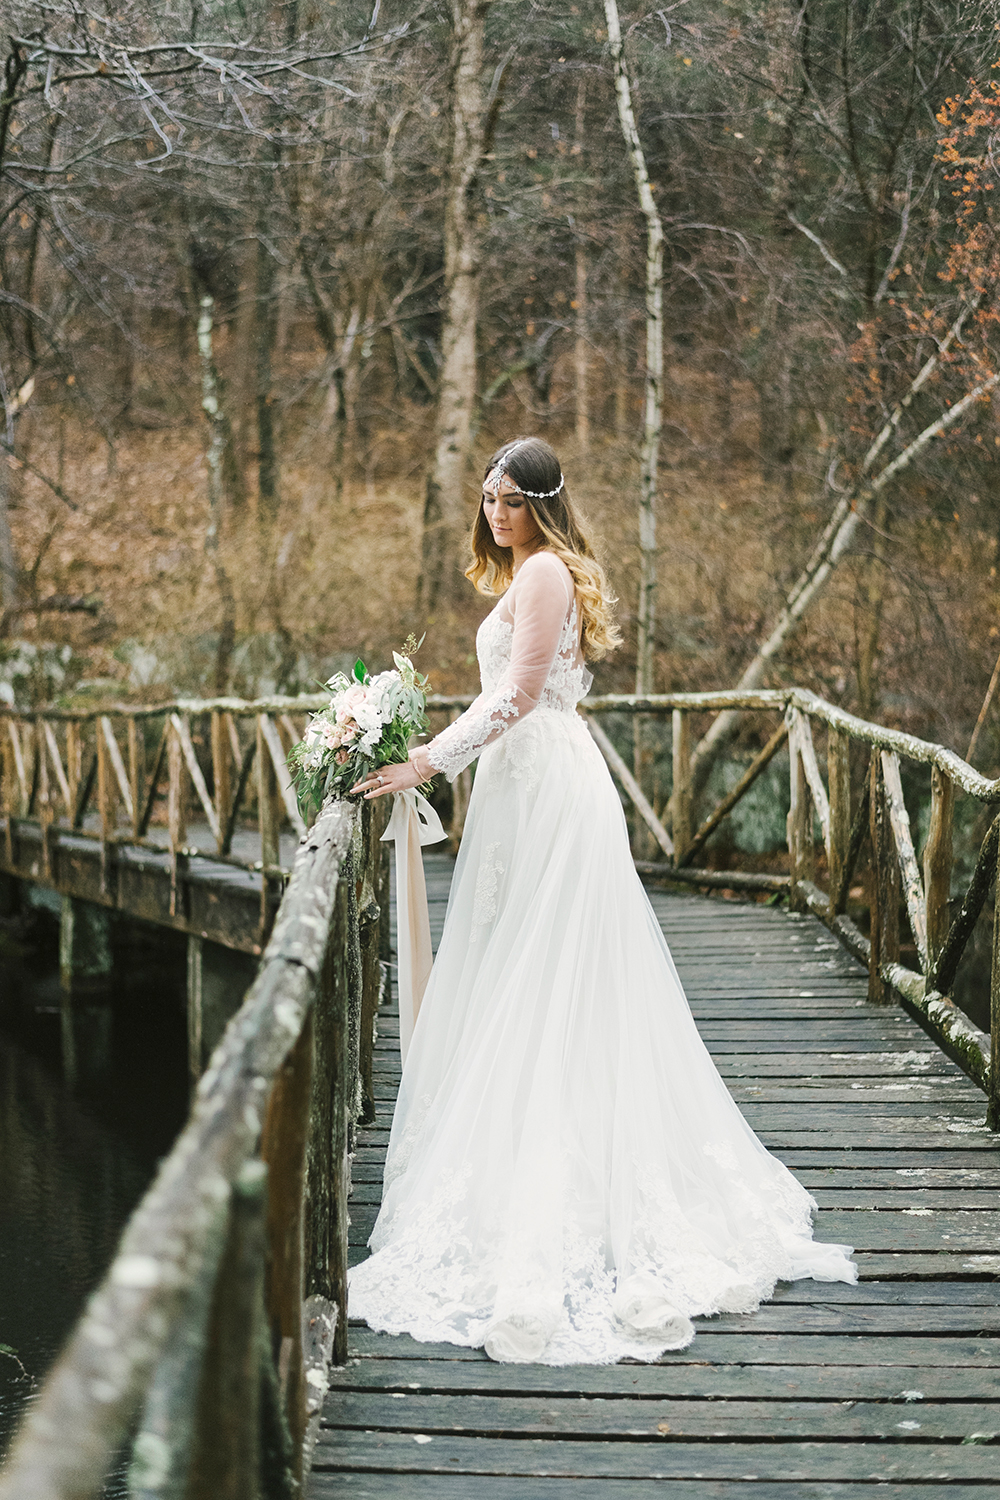 bohemian brides - photo by Alicia King Photography http://ruffledblog.com/upstate-new-york-wedding-ideas-with-copper